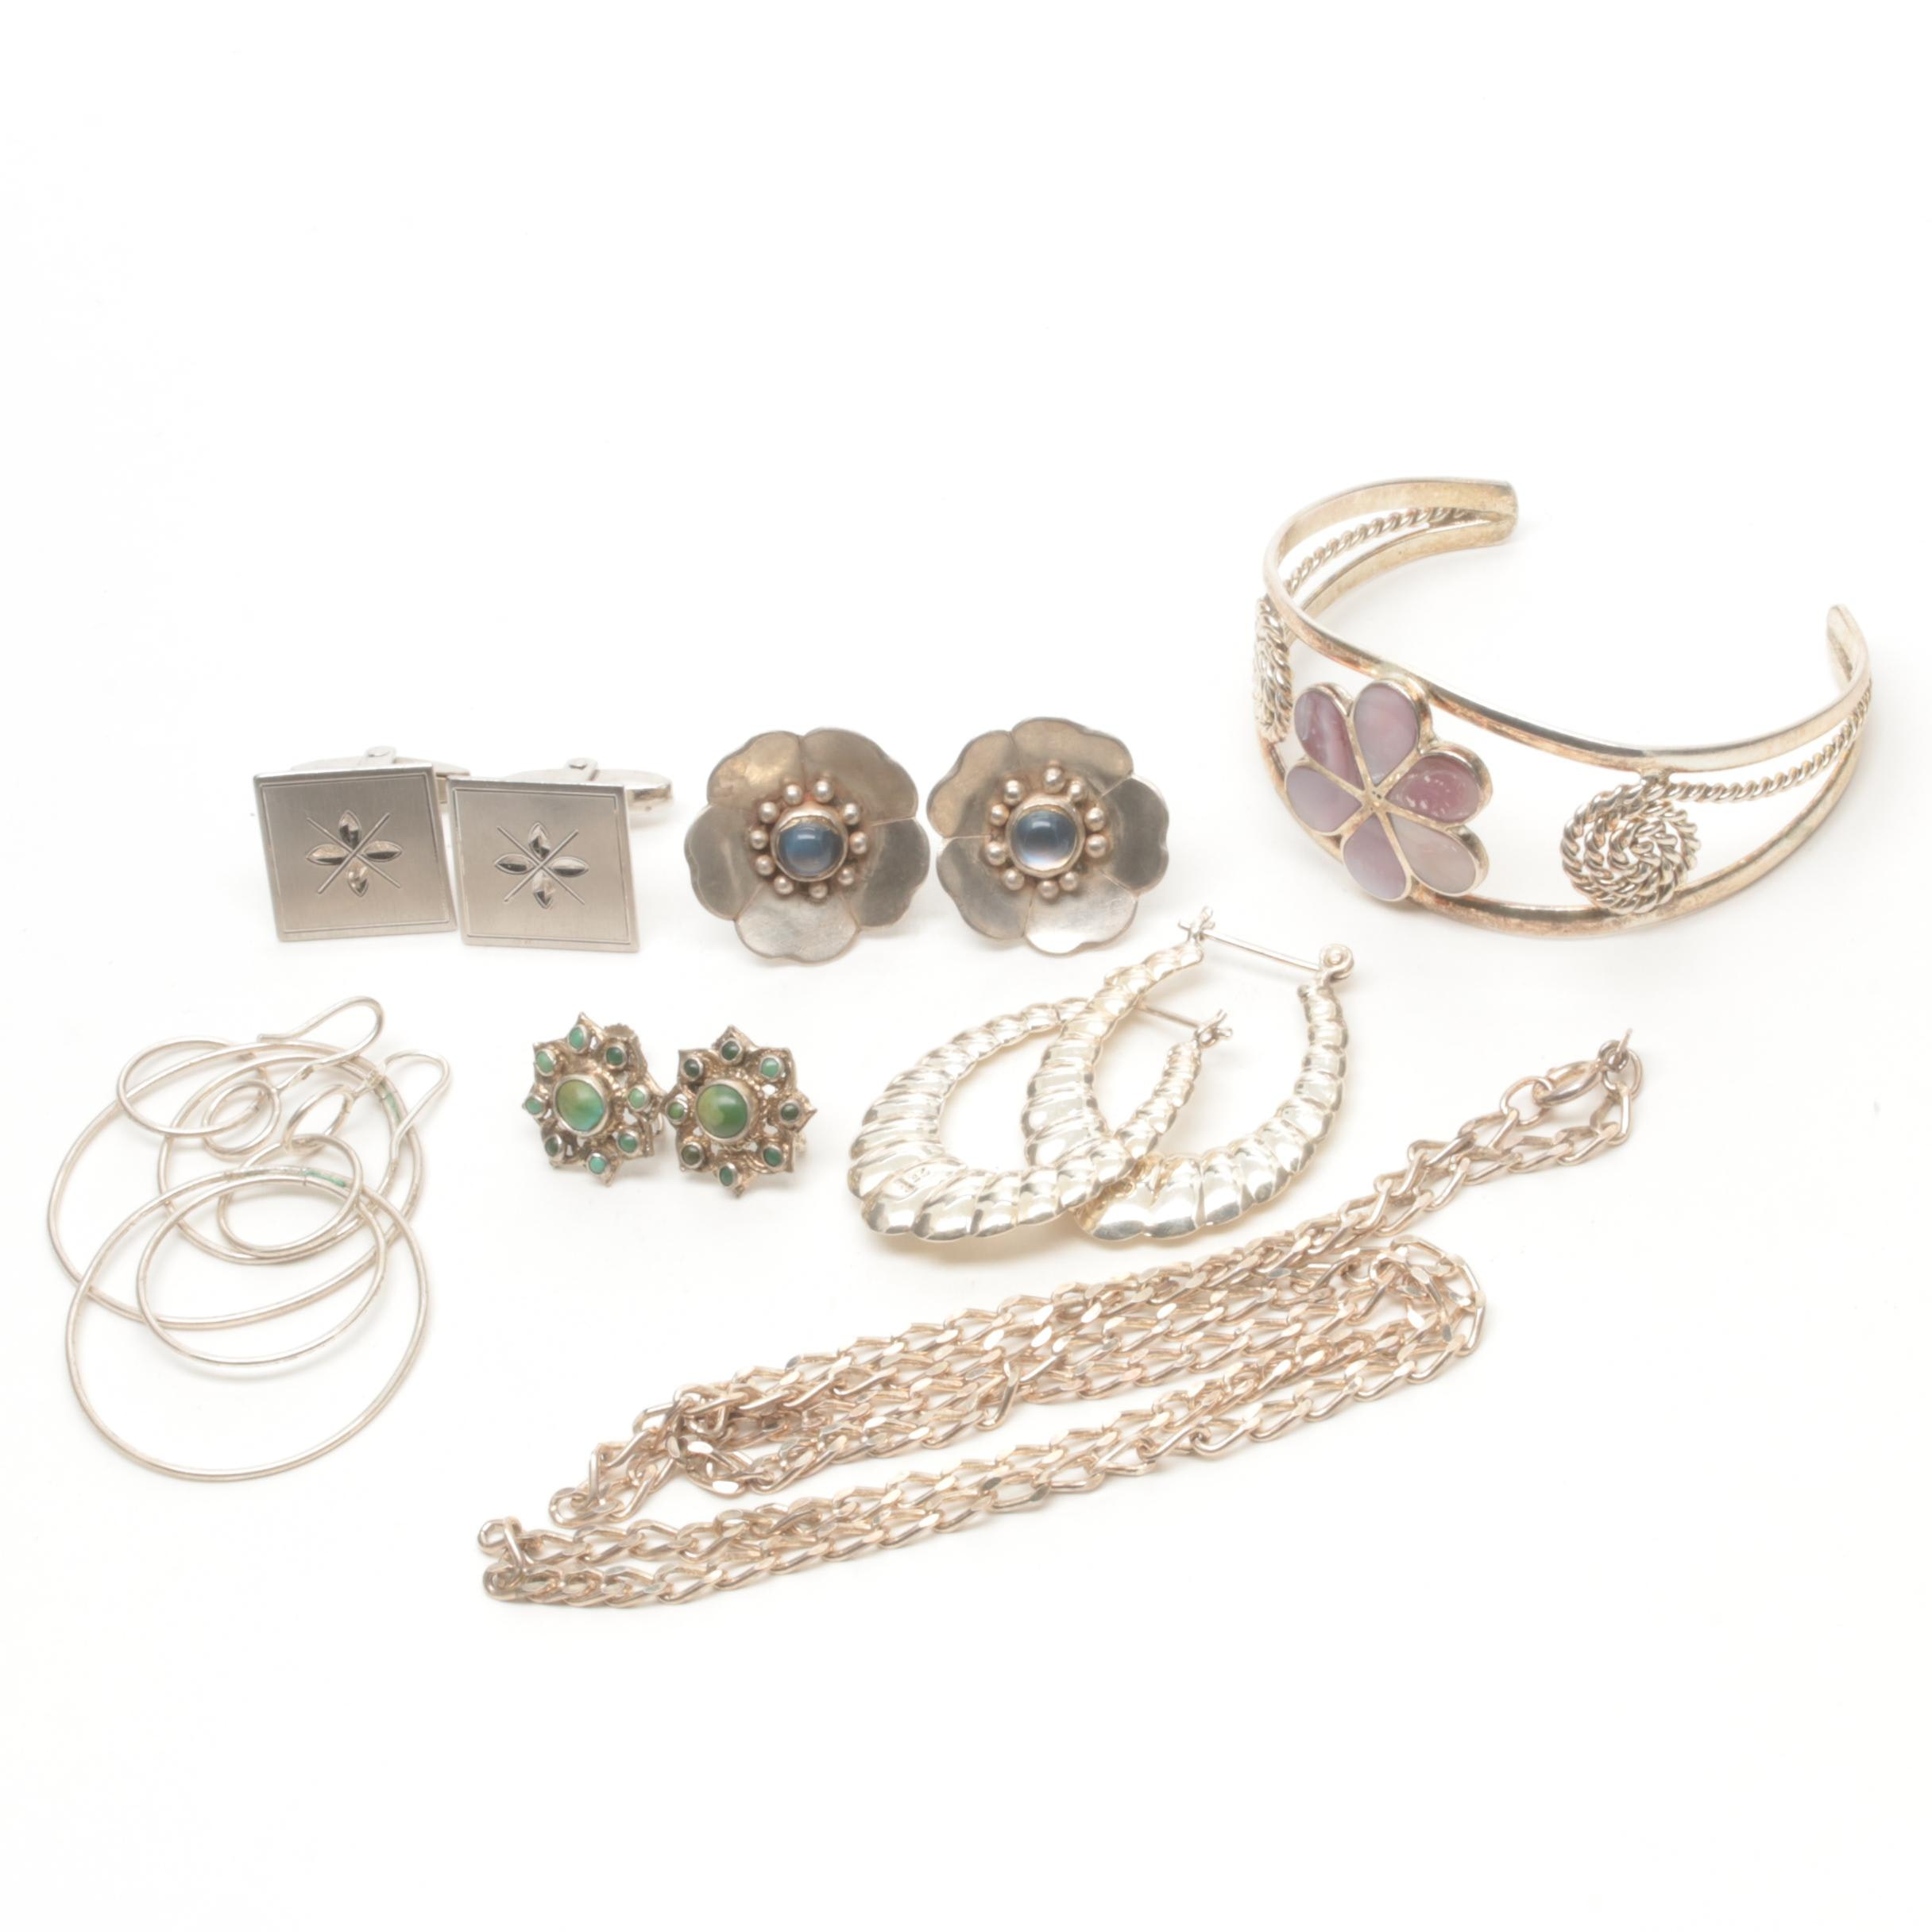 Assortment of Sterling Silver and Costume Jewelry